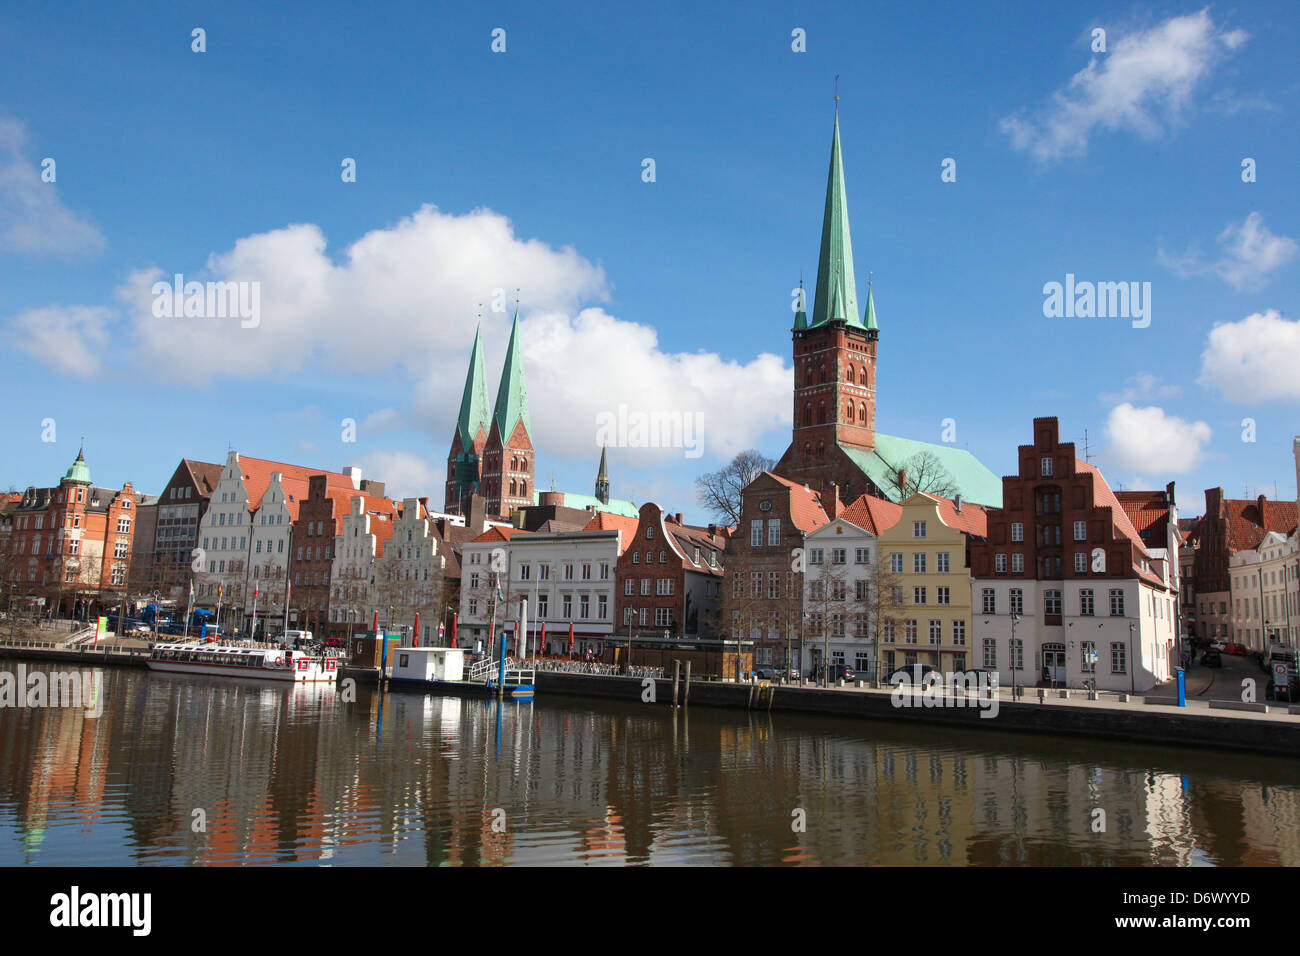 Center of Lubeck, Schleswig-Holstein, Germany, at the river Trave. - Stock Image